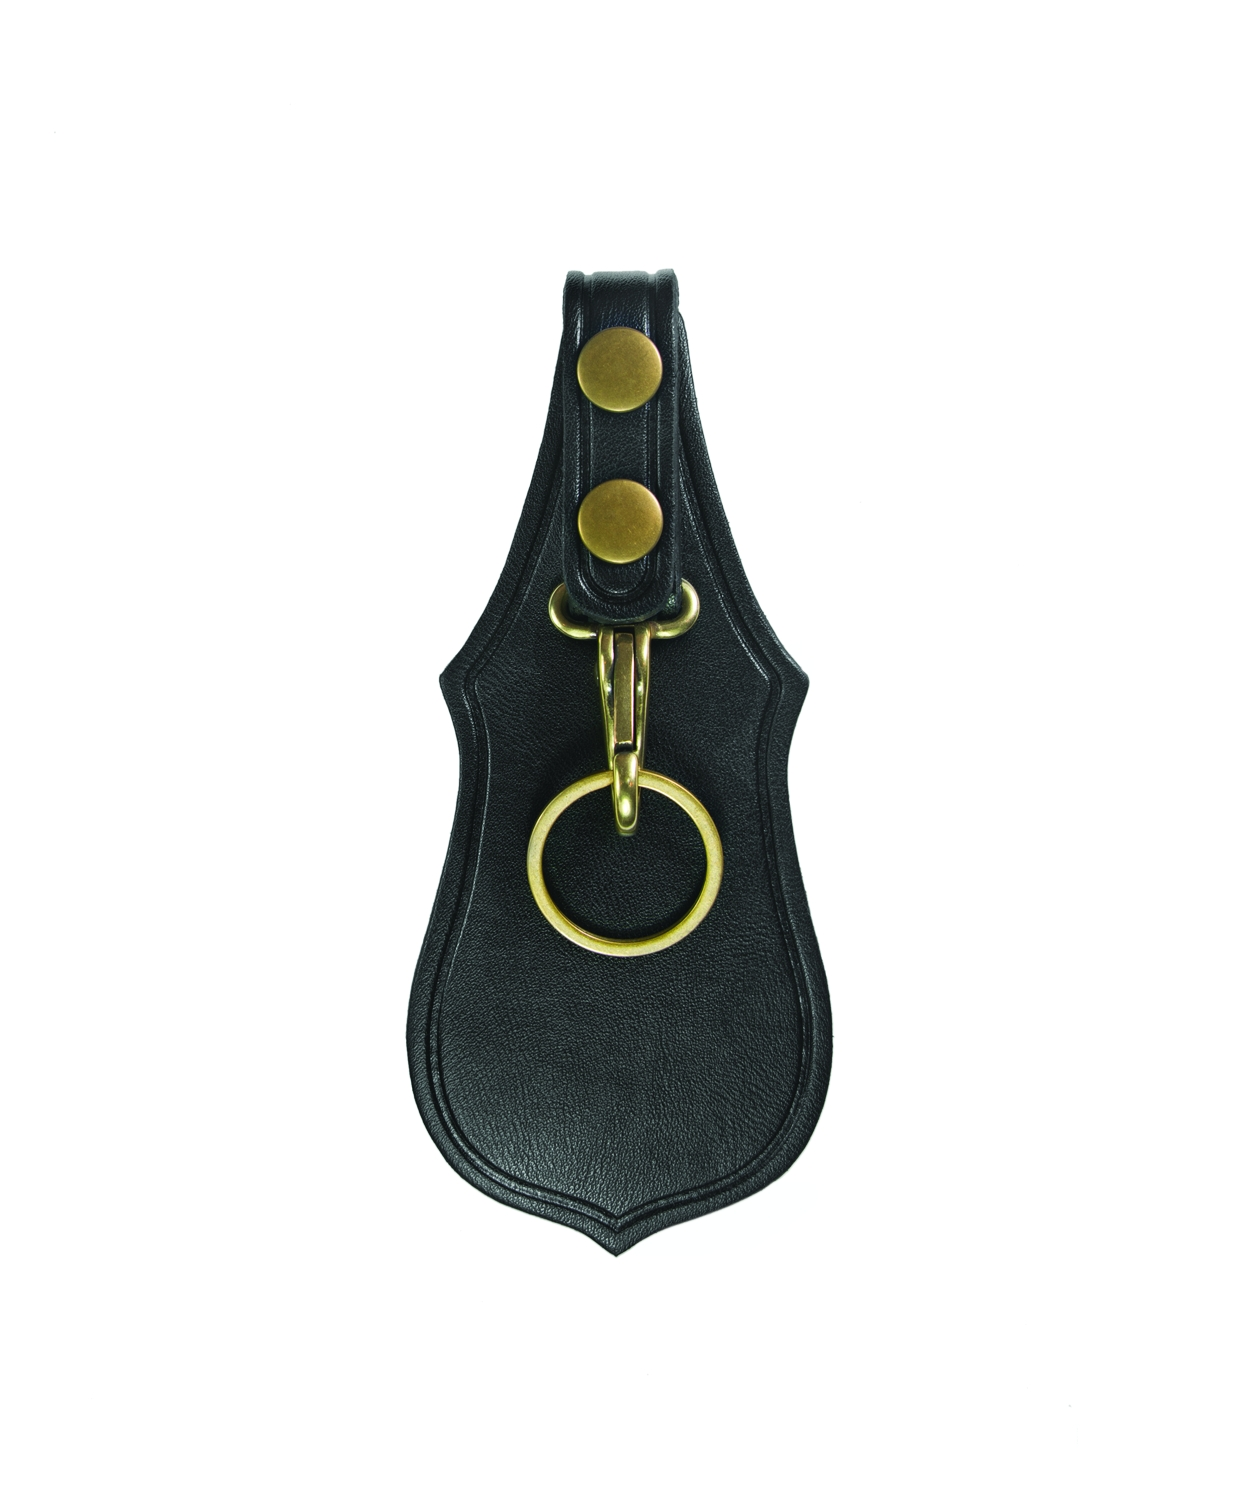 Key Holder, Scabbard, Single, AirTek, Smooth, Brass Snaps-